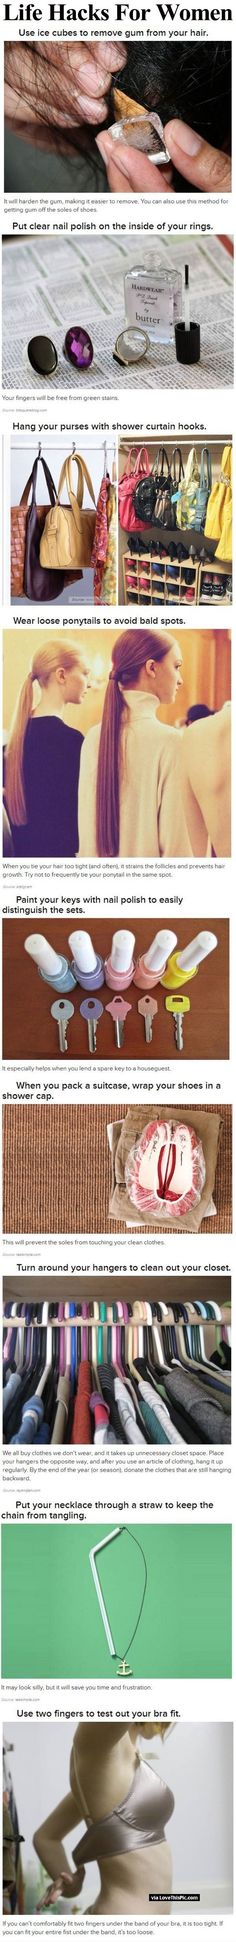 Life Hacks For Women women diy diy ideas easy diy interesting tips life hacks life hack good to know